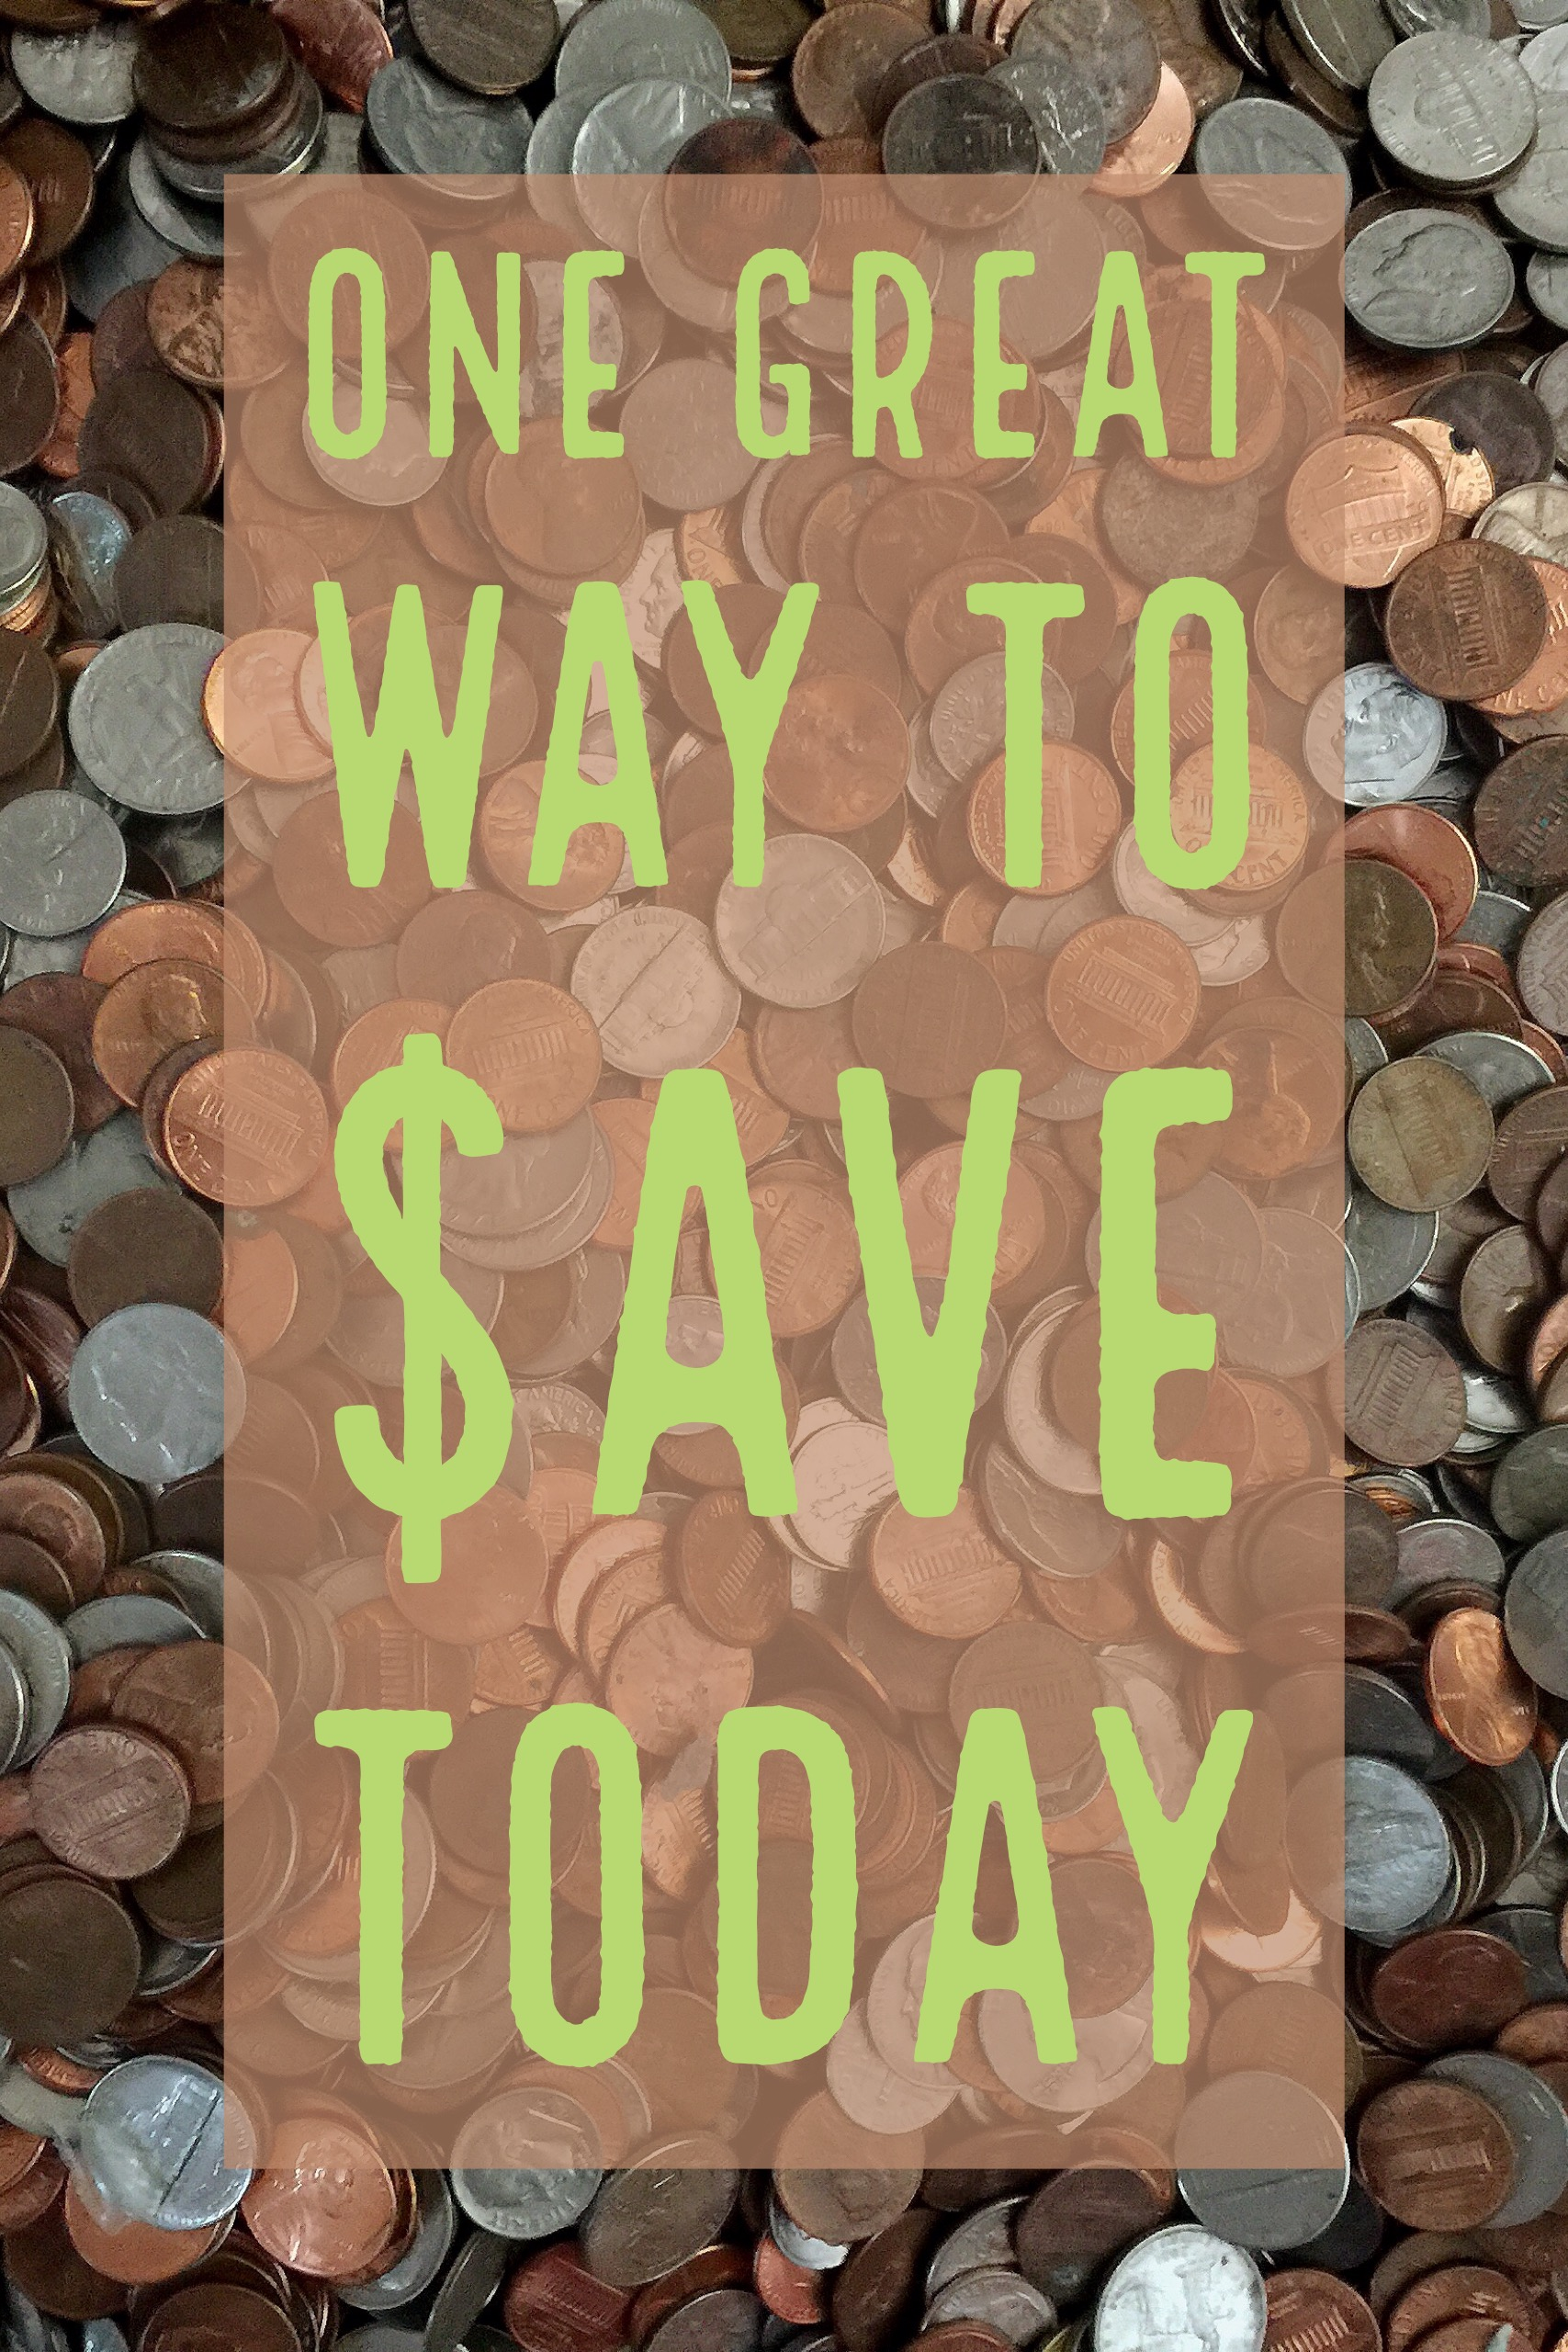 Are you ready to see how your pocket change can add up? See how a bunch of pennies changed my budget (and outlook) for preparing for rainy day goals. Plus another way to also shop resourcefully with Groupon coupons to help your savings goals!